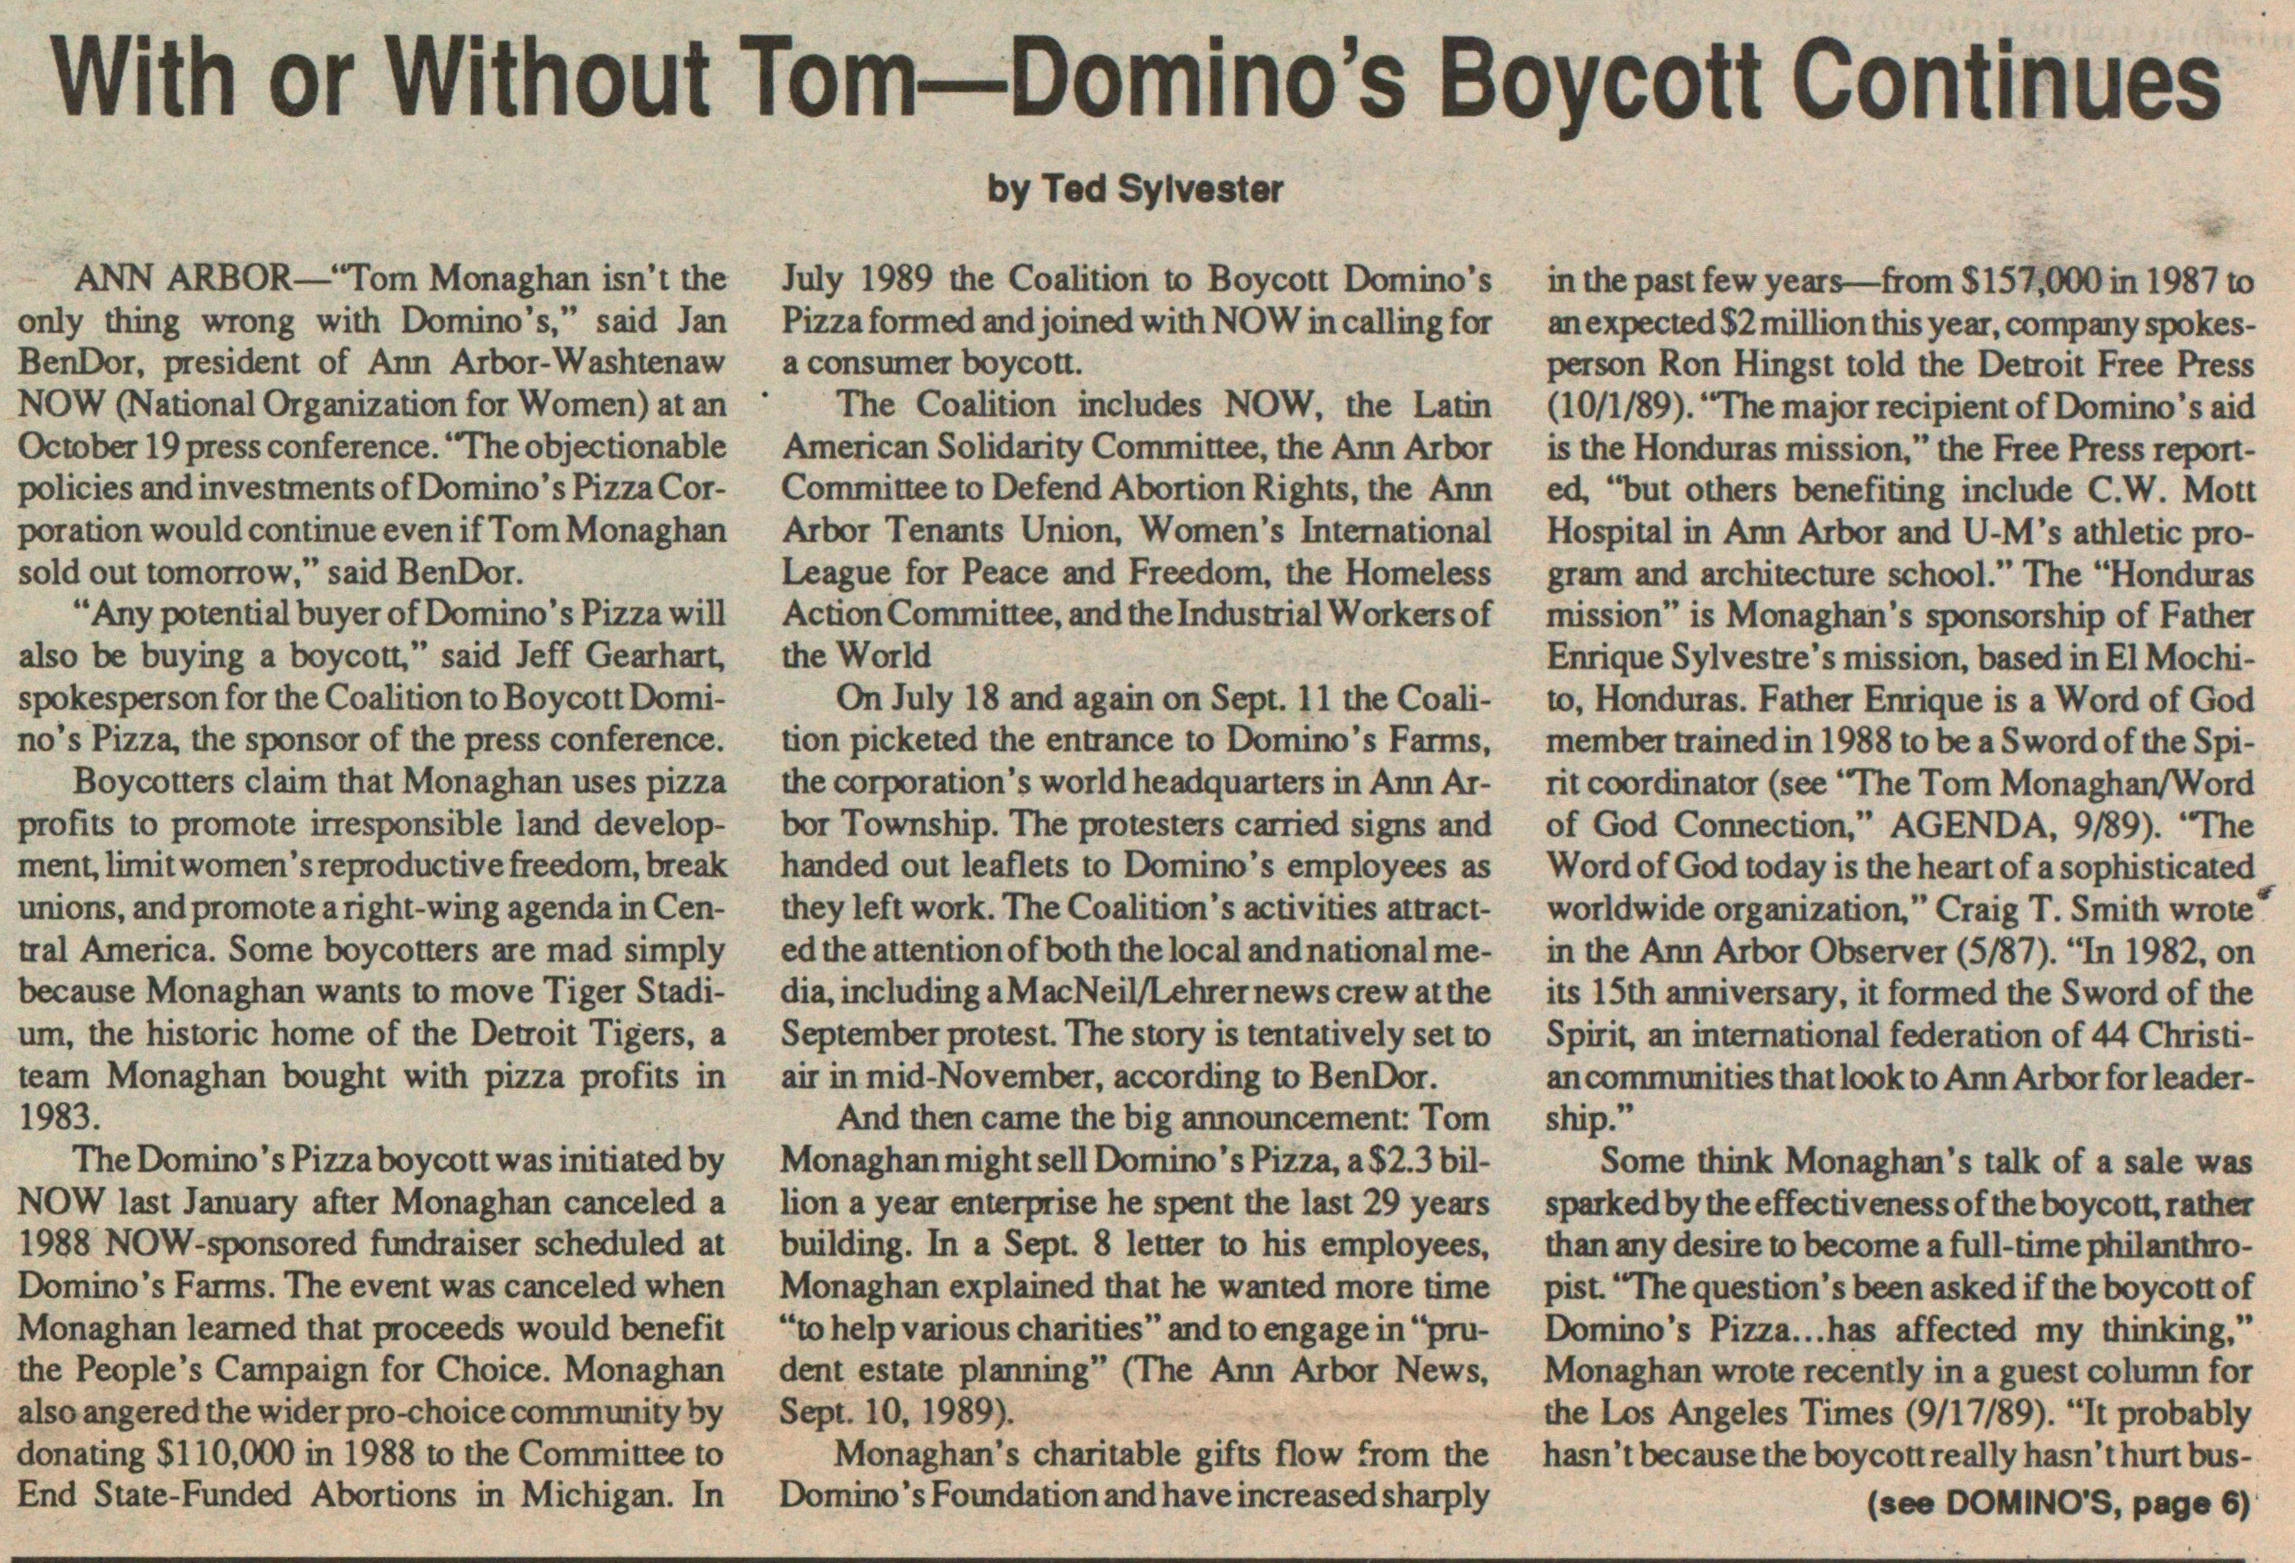 With Or Without Tom--domino's Boycott Continues image